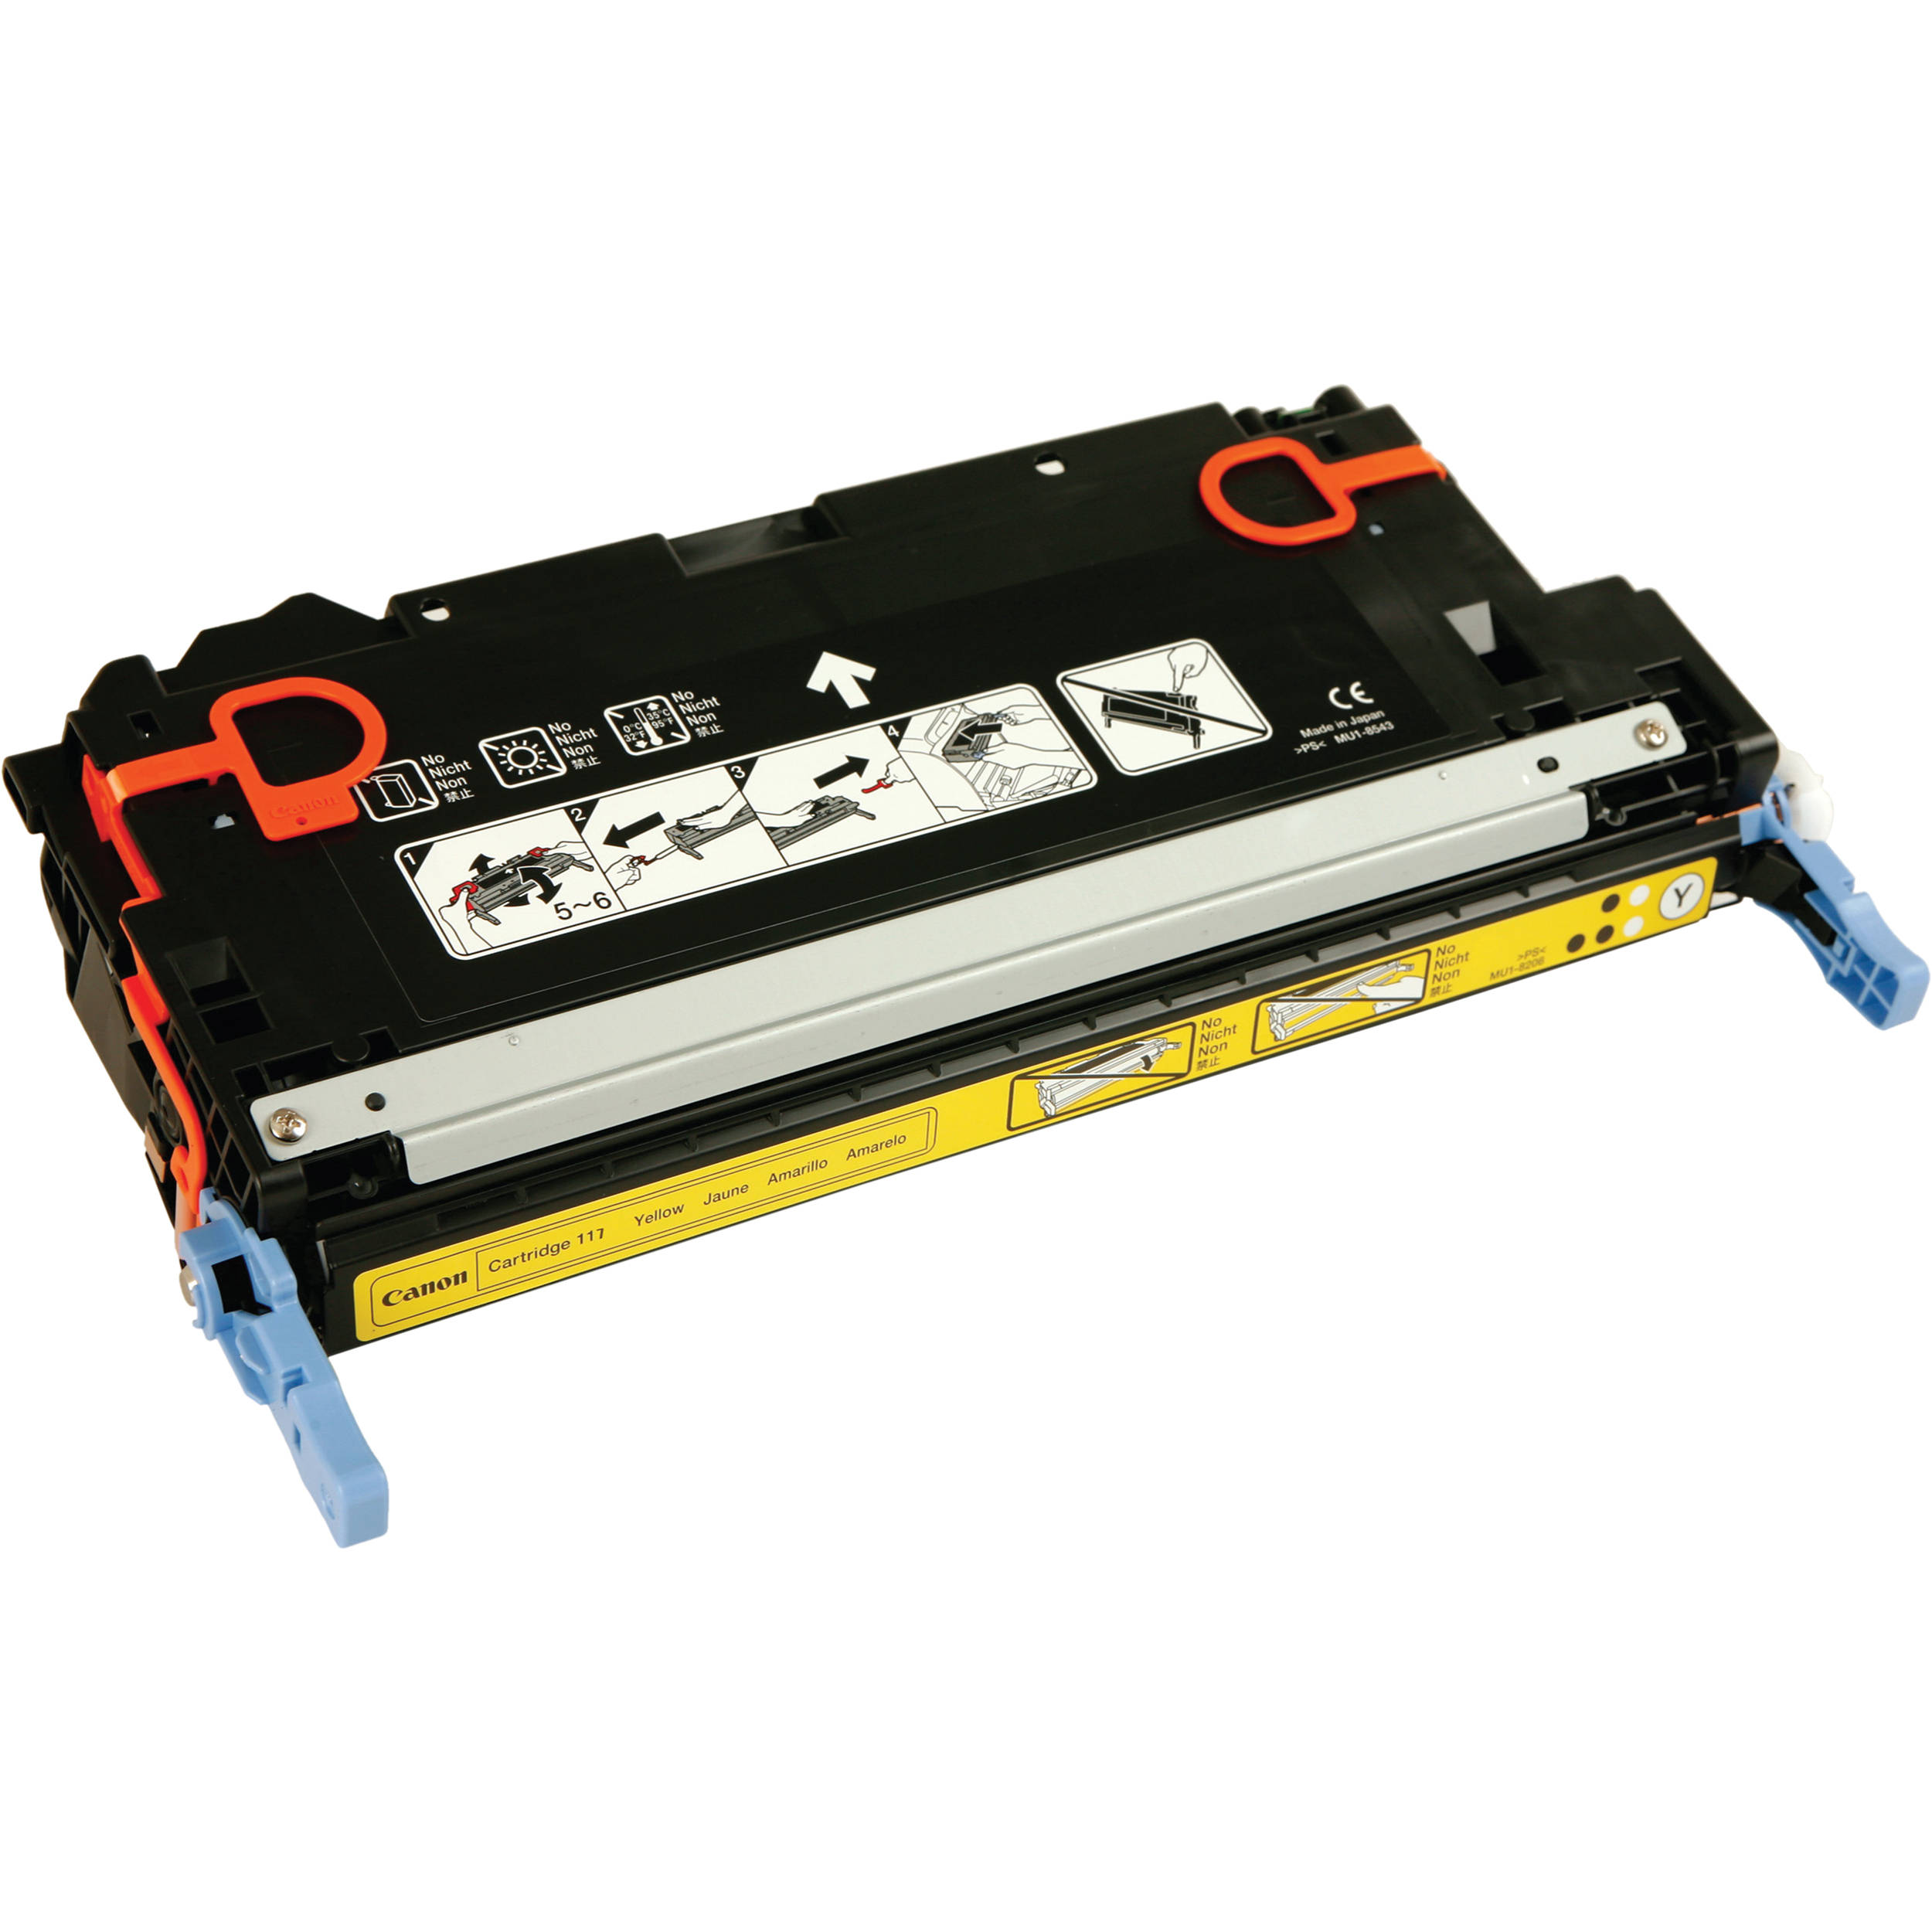 Https C Product 696885 Reg Learn About Electronics With Snap Circuits Junior Canon 2575b001 117 Toner Cartridge Yellow 687624